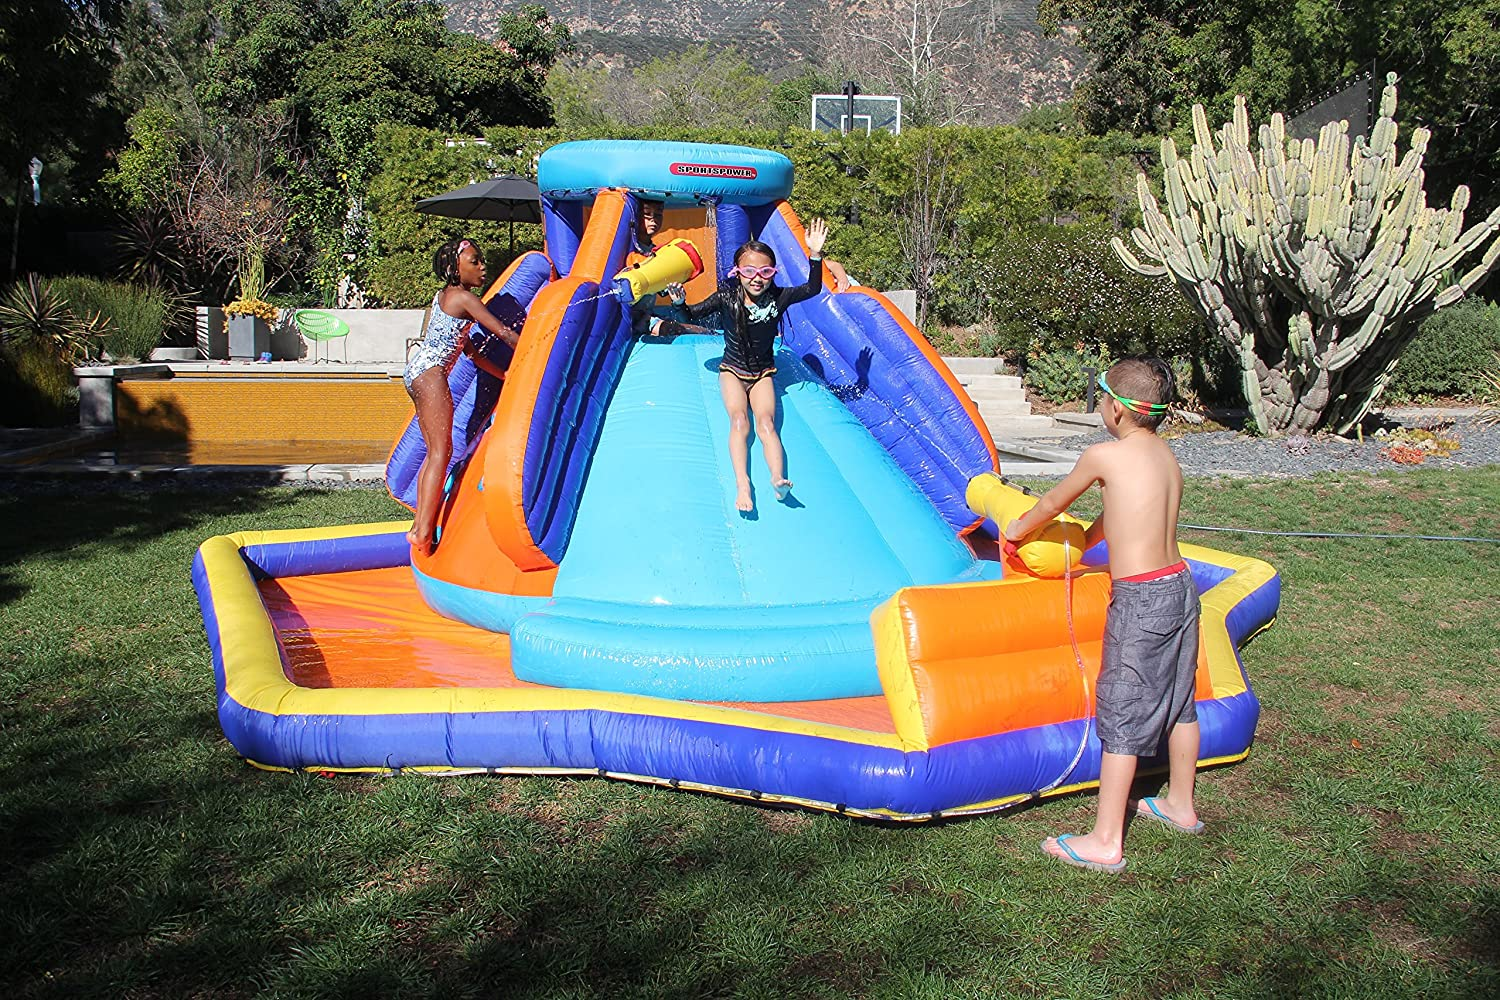 Top 7 Best Water Slide Pools Inflatable Reviews in 2020 5